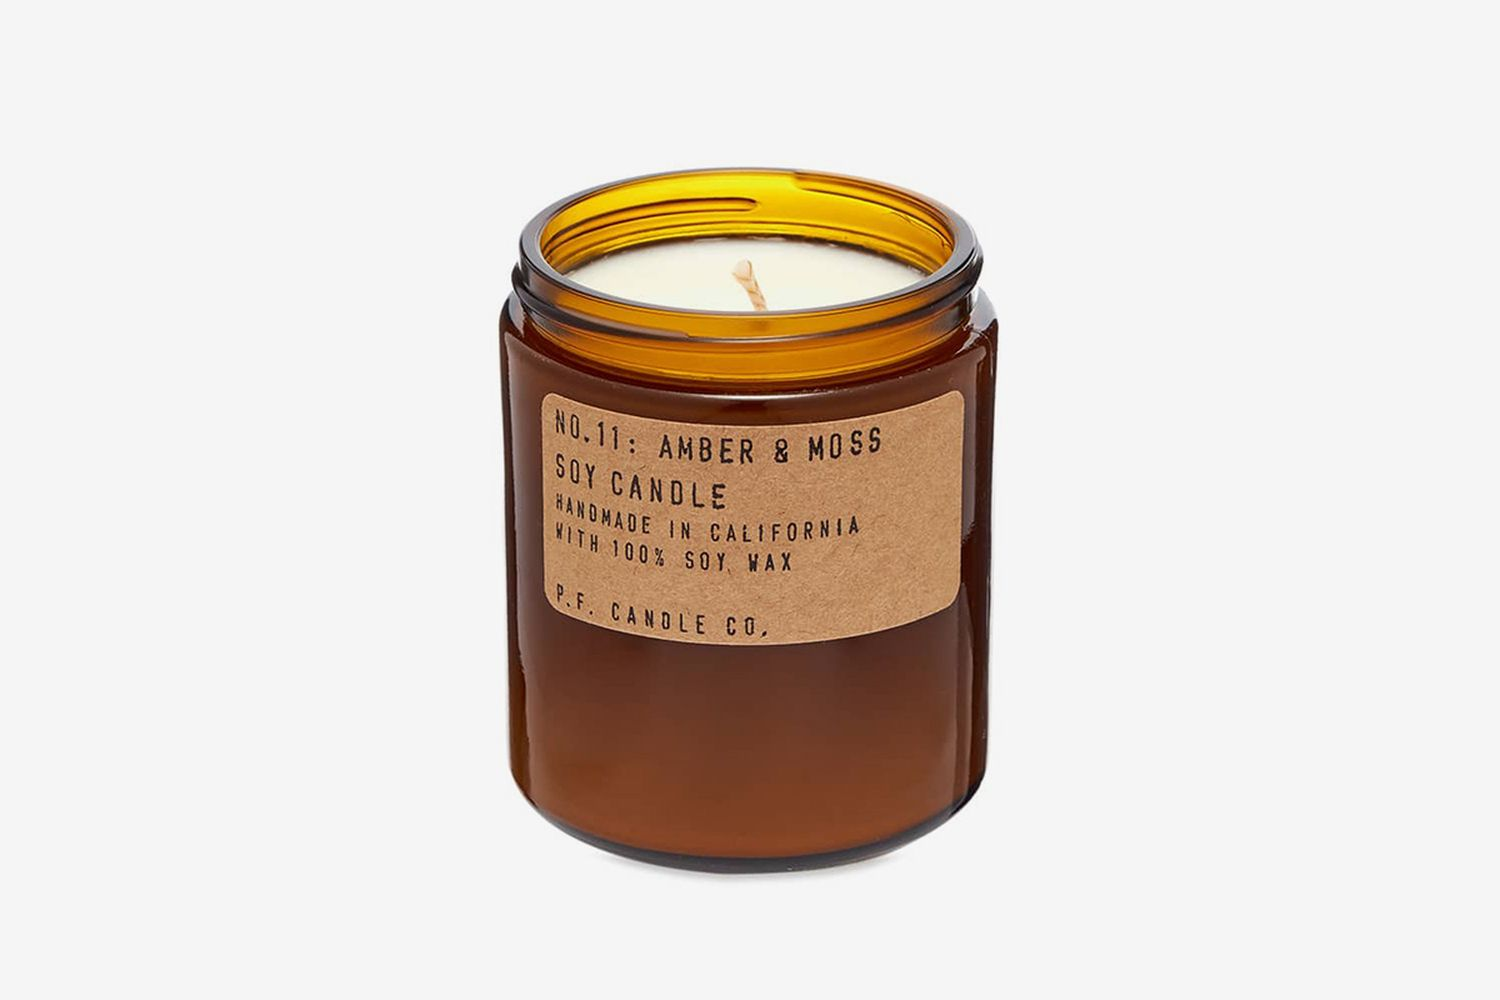 No.11 Amber & Moss Soy Candle